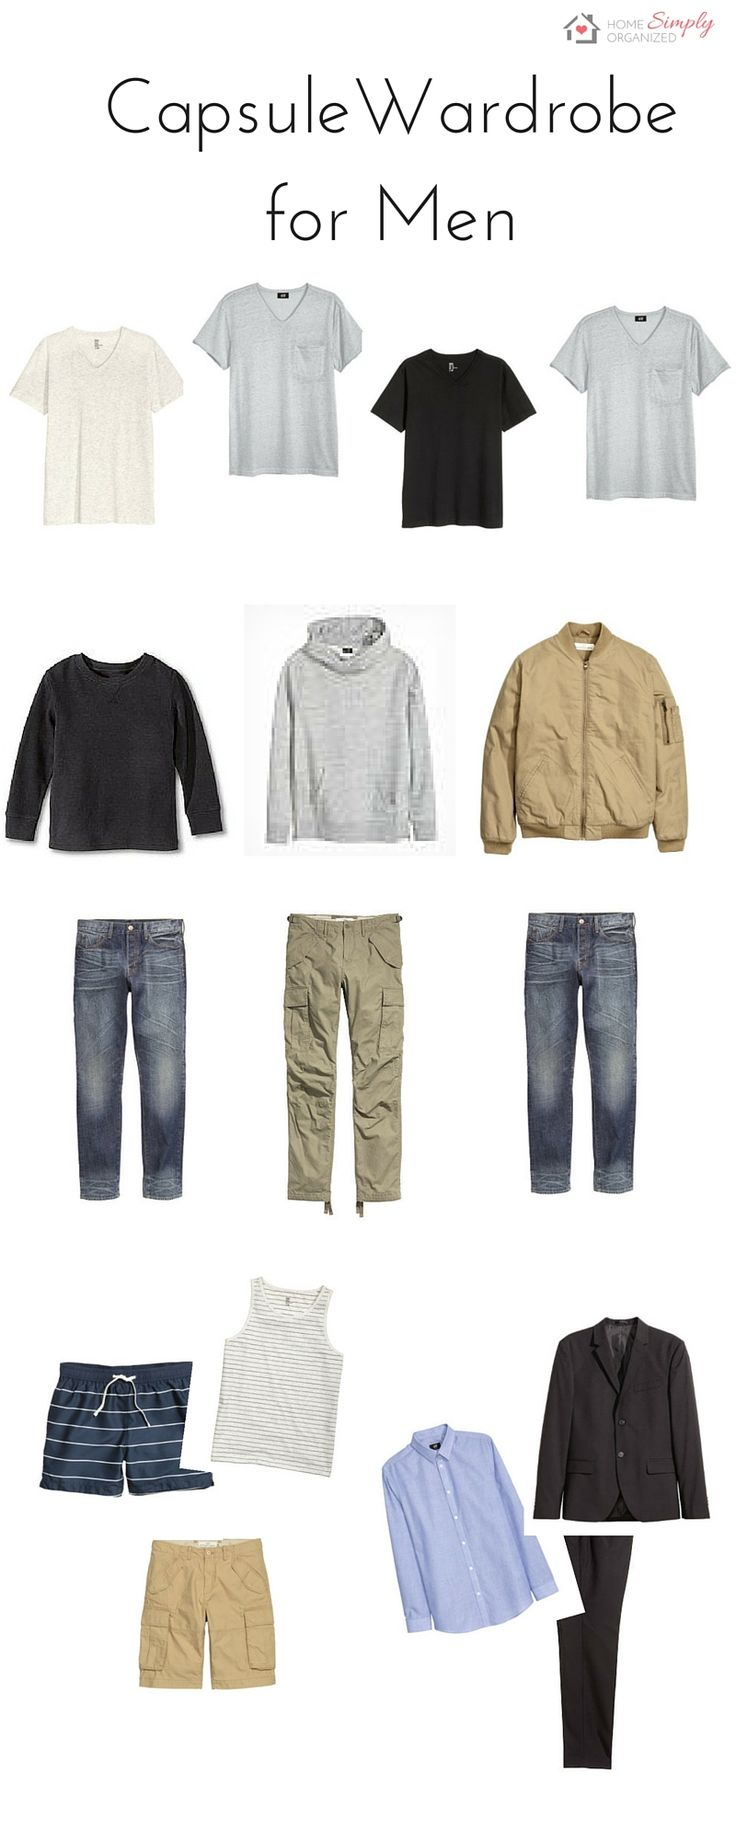 CapsuleWardrobe for Men